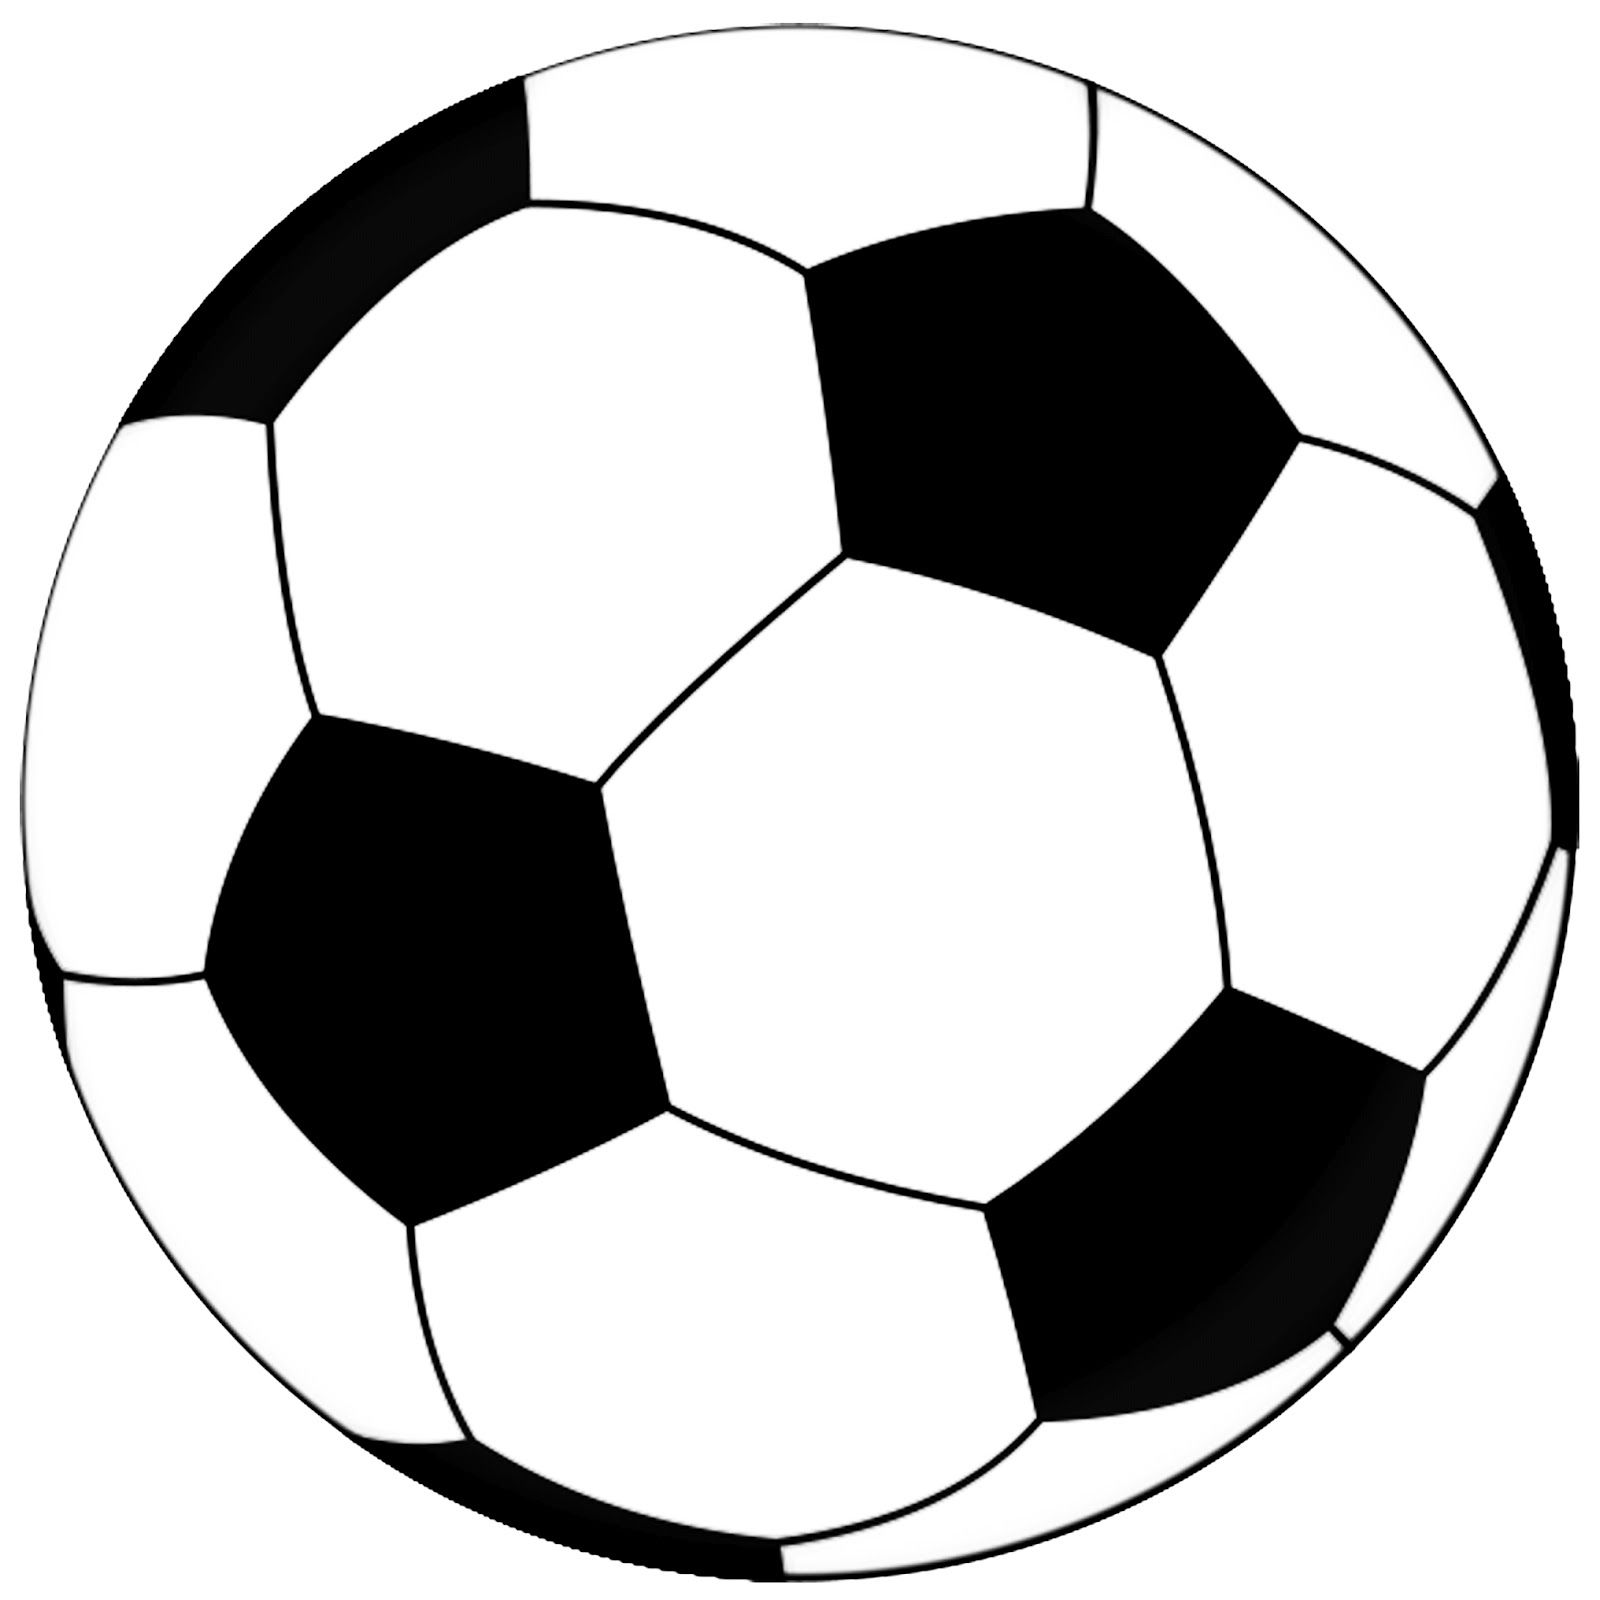 Hw to draw a soccer ball clipart svg stock Best Photos of Soccer Ball Template - Soccer Ball Drawing, Soccer ... svg stock